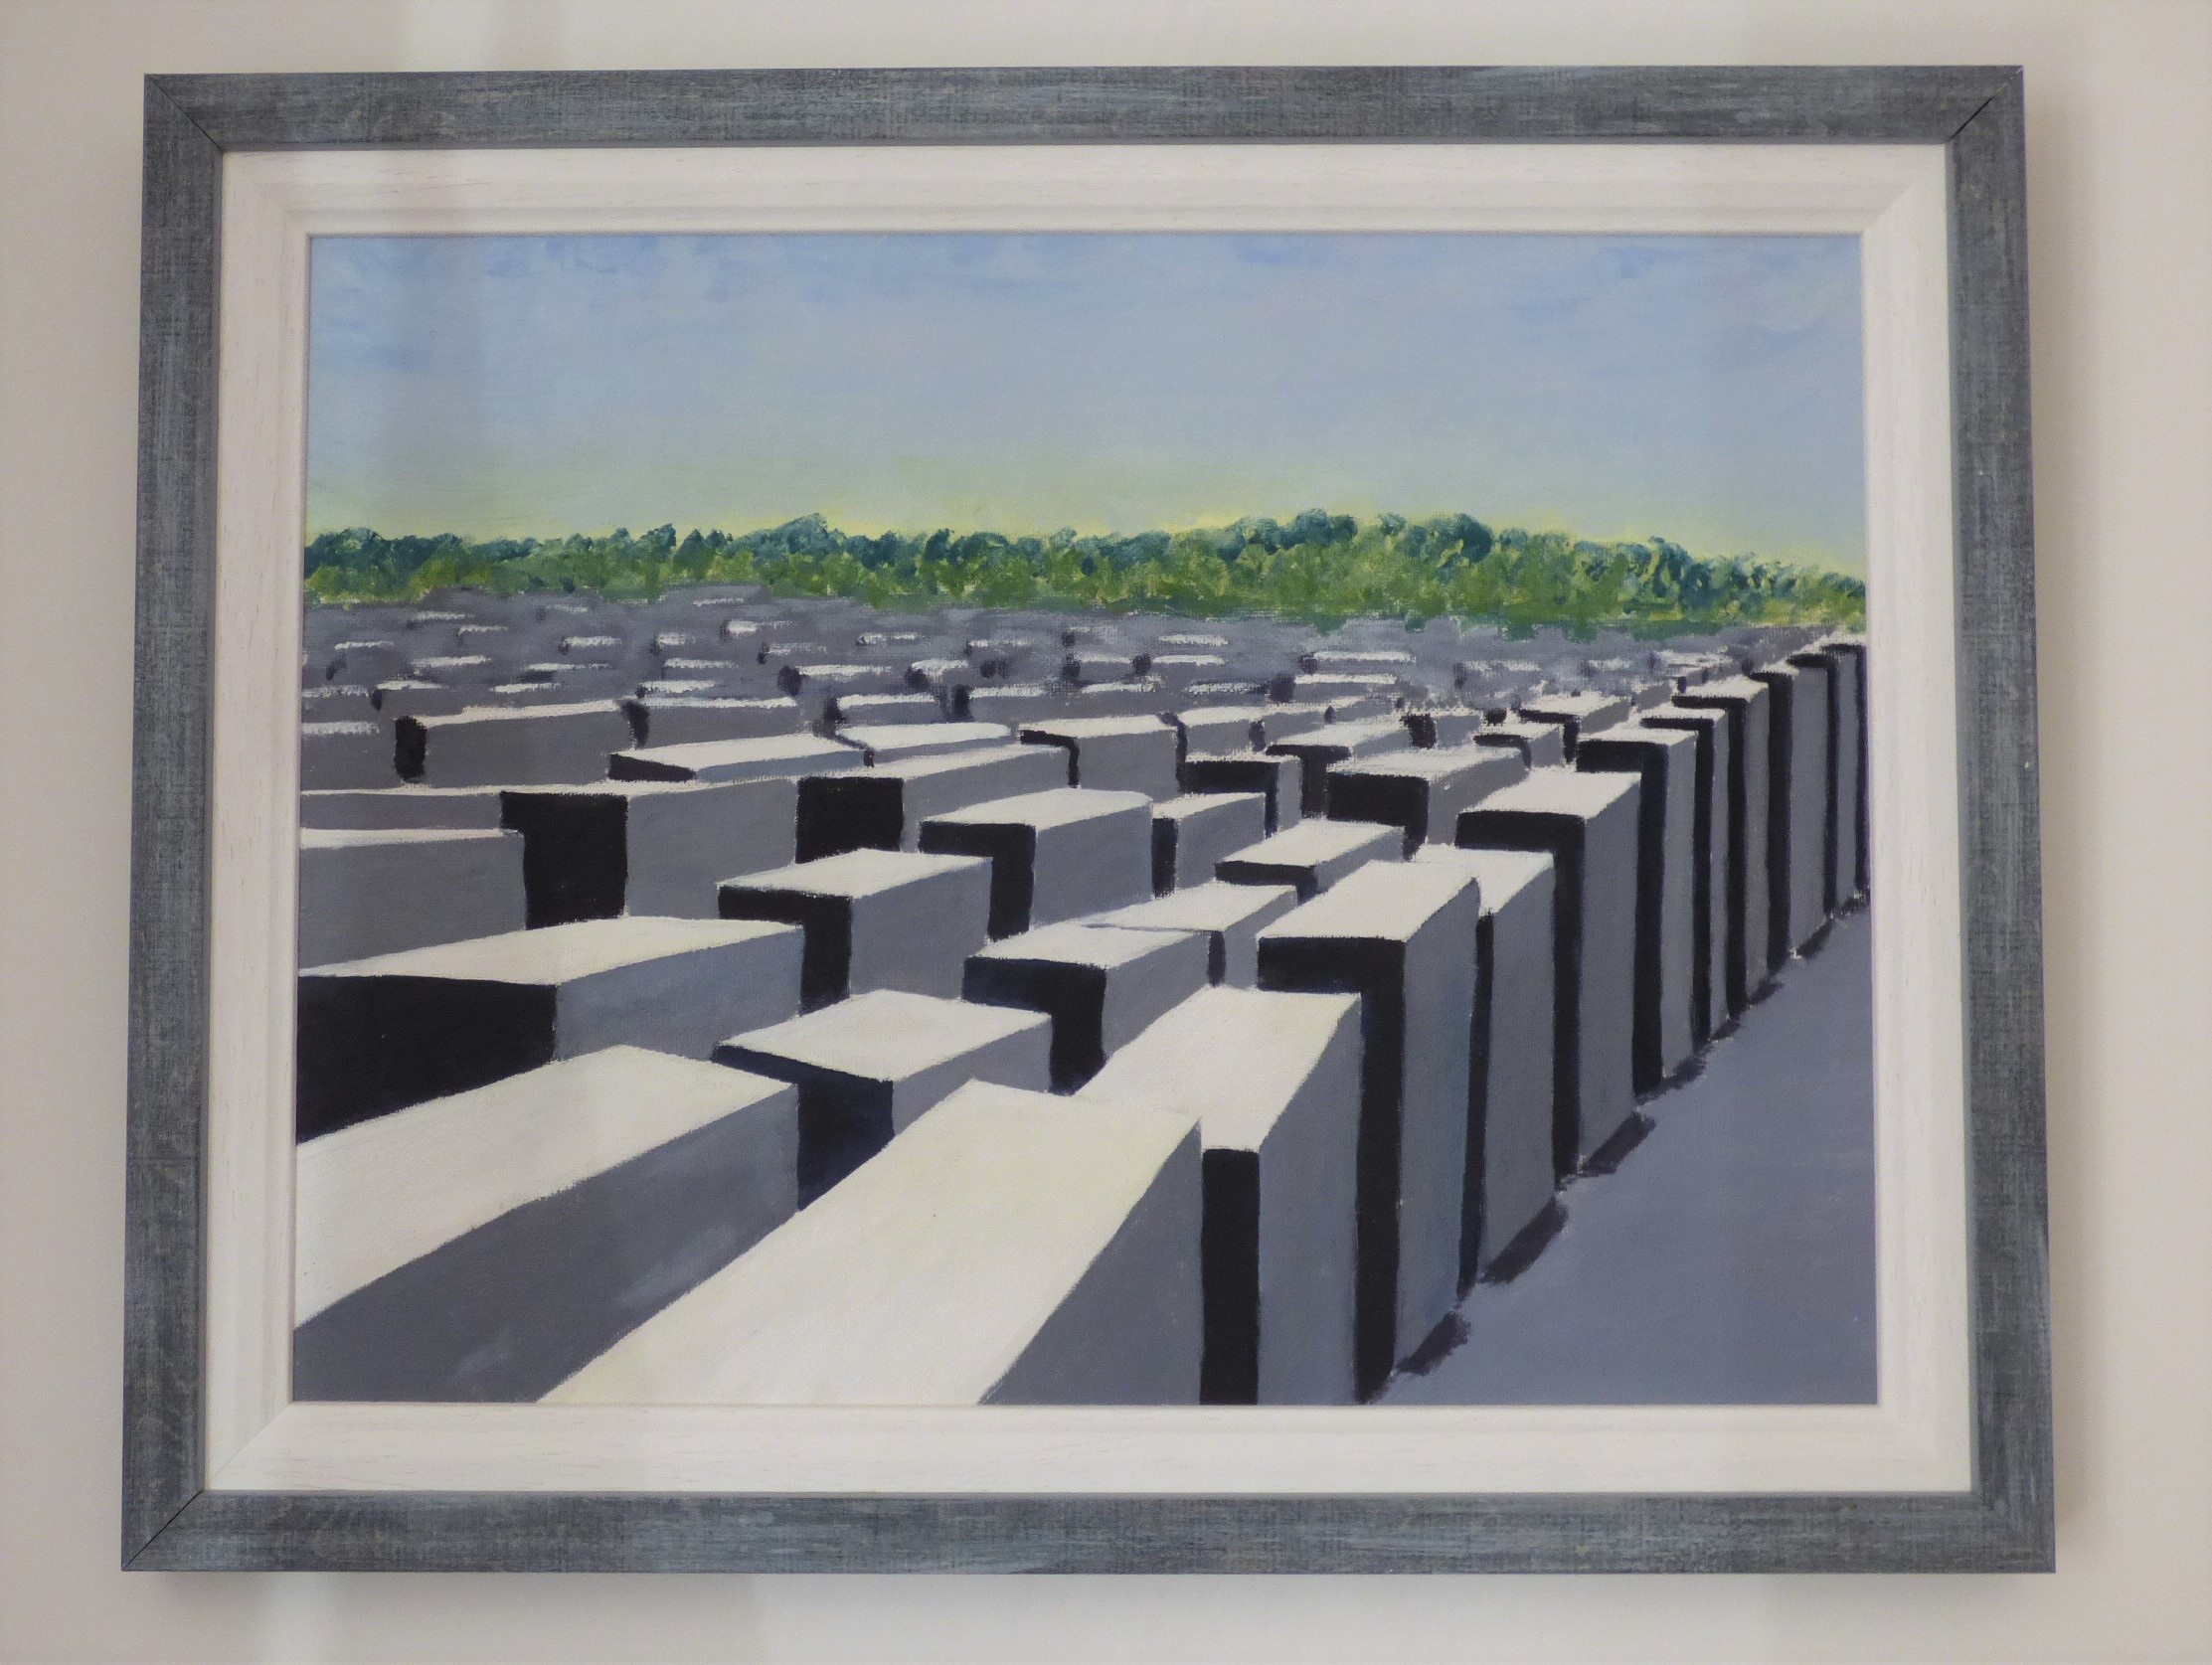 Berlin Holocaust Memorial, 2018